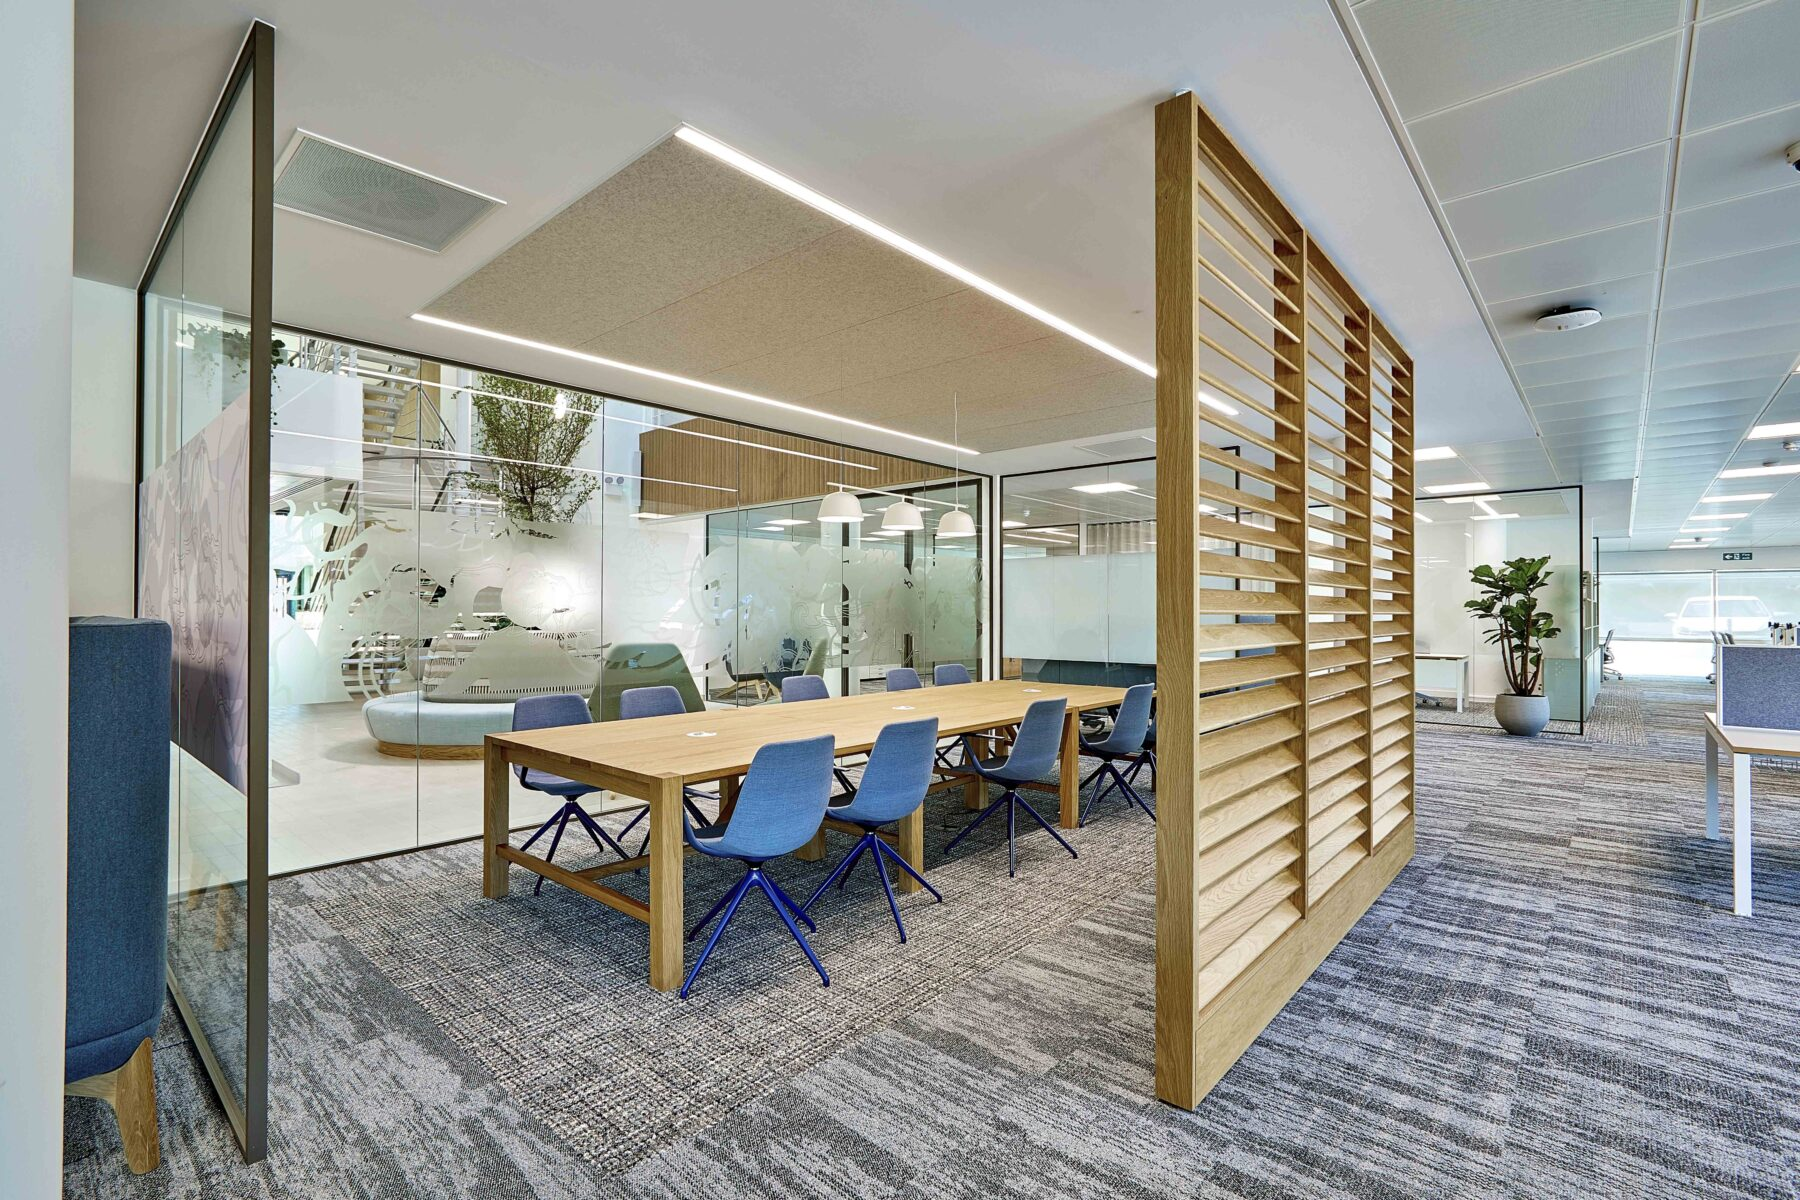 Boardroom and flexible interiors in SJP's office